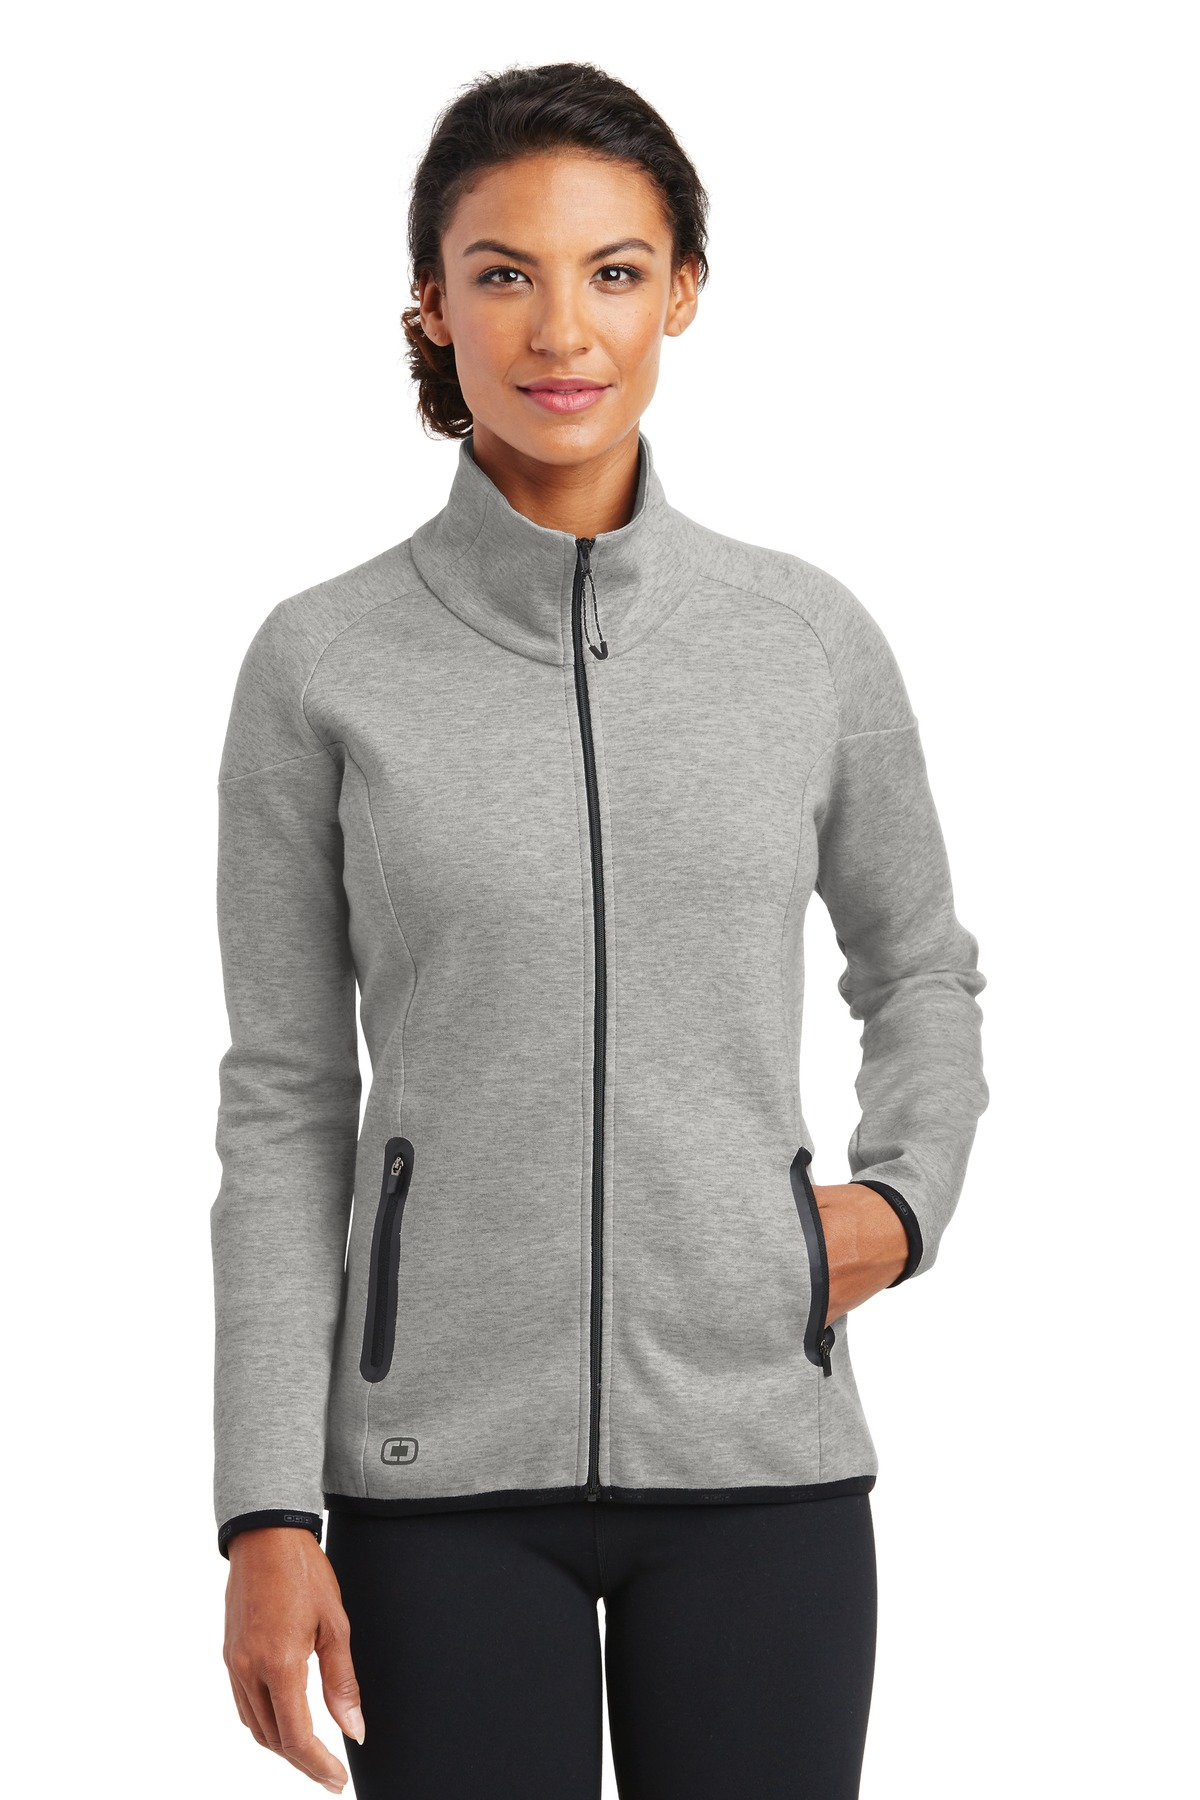 OGIO ®  ENDURANCE Ladies Origin Jacket. LOE503 - Aluminum Grey